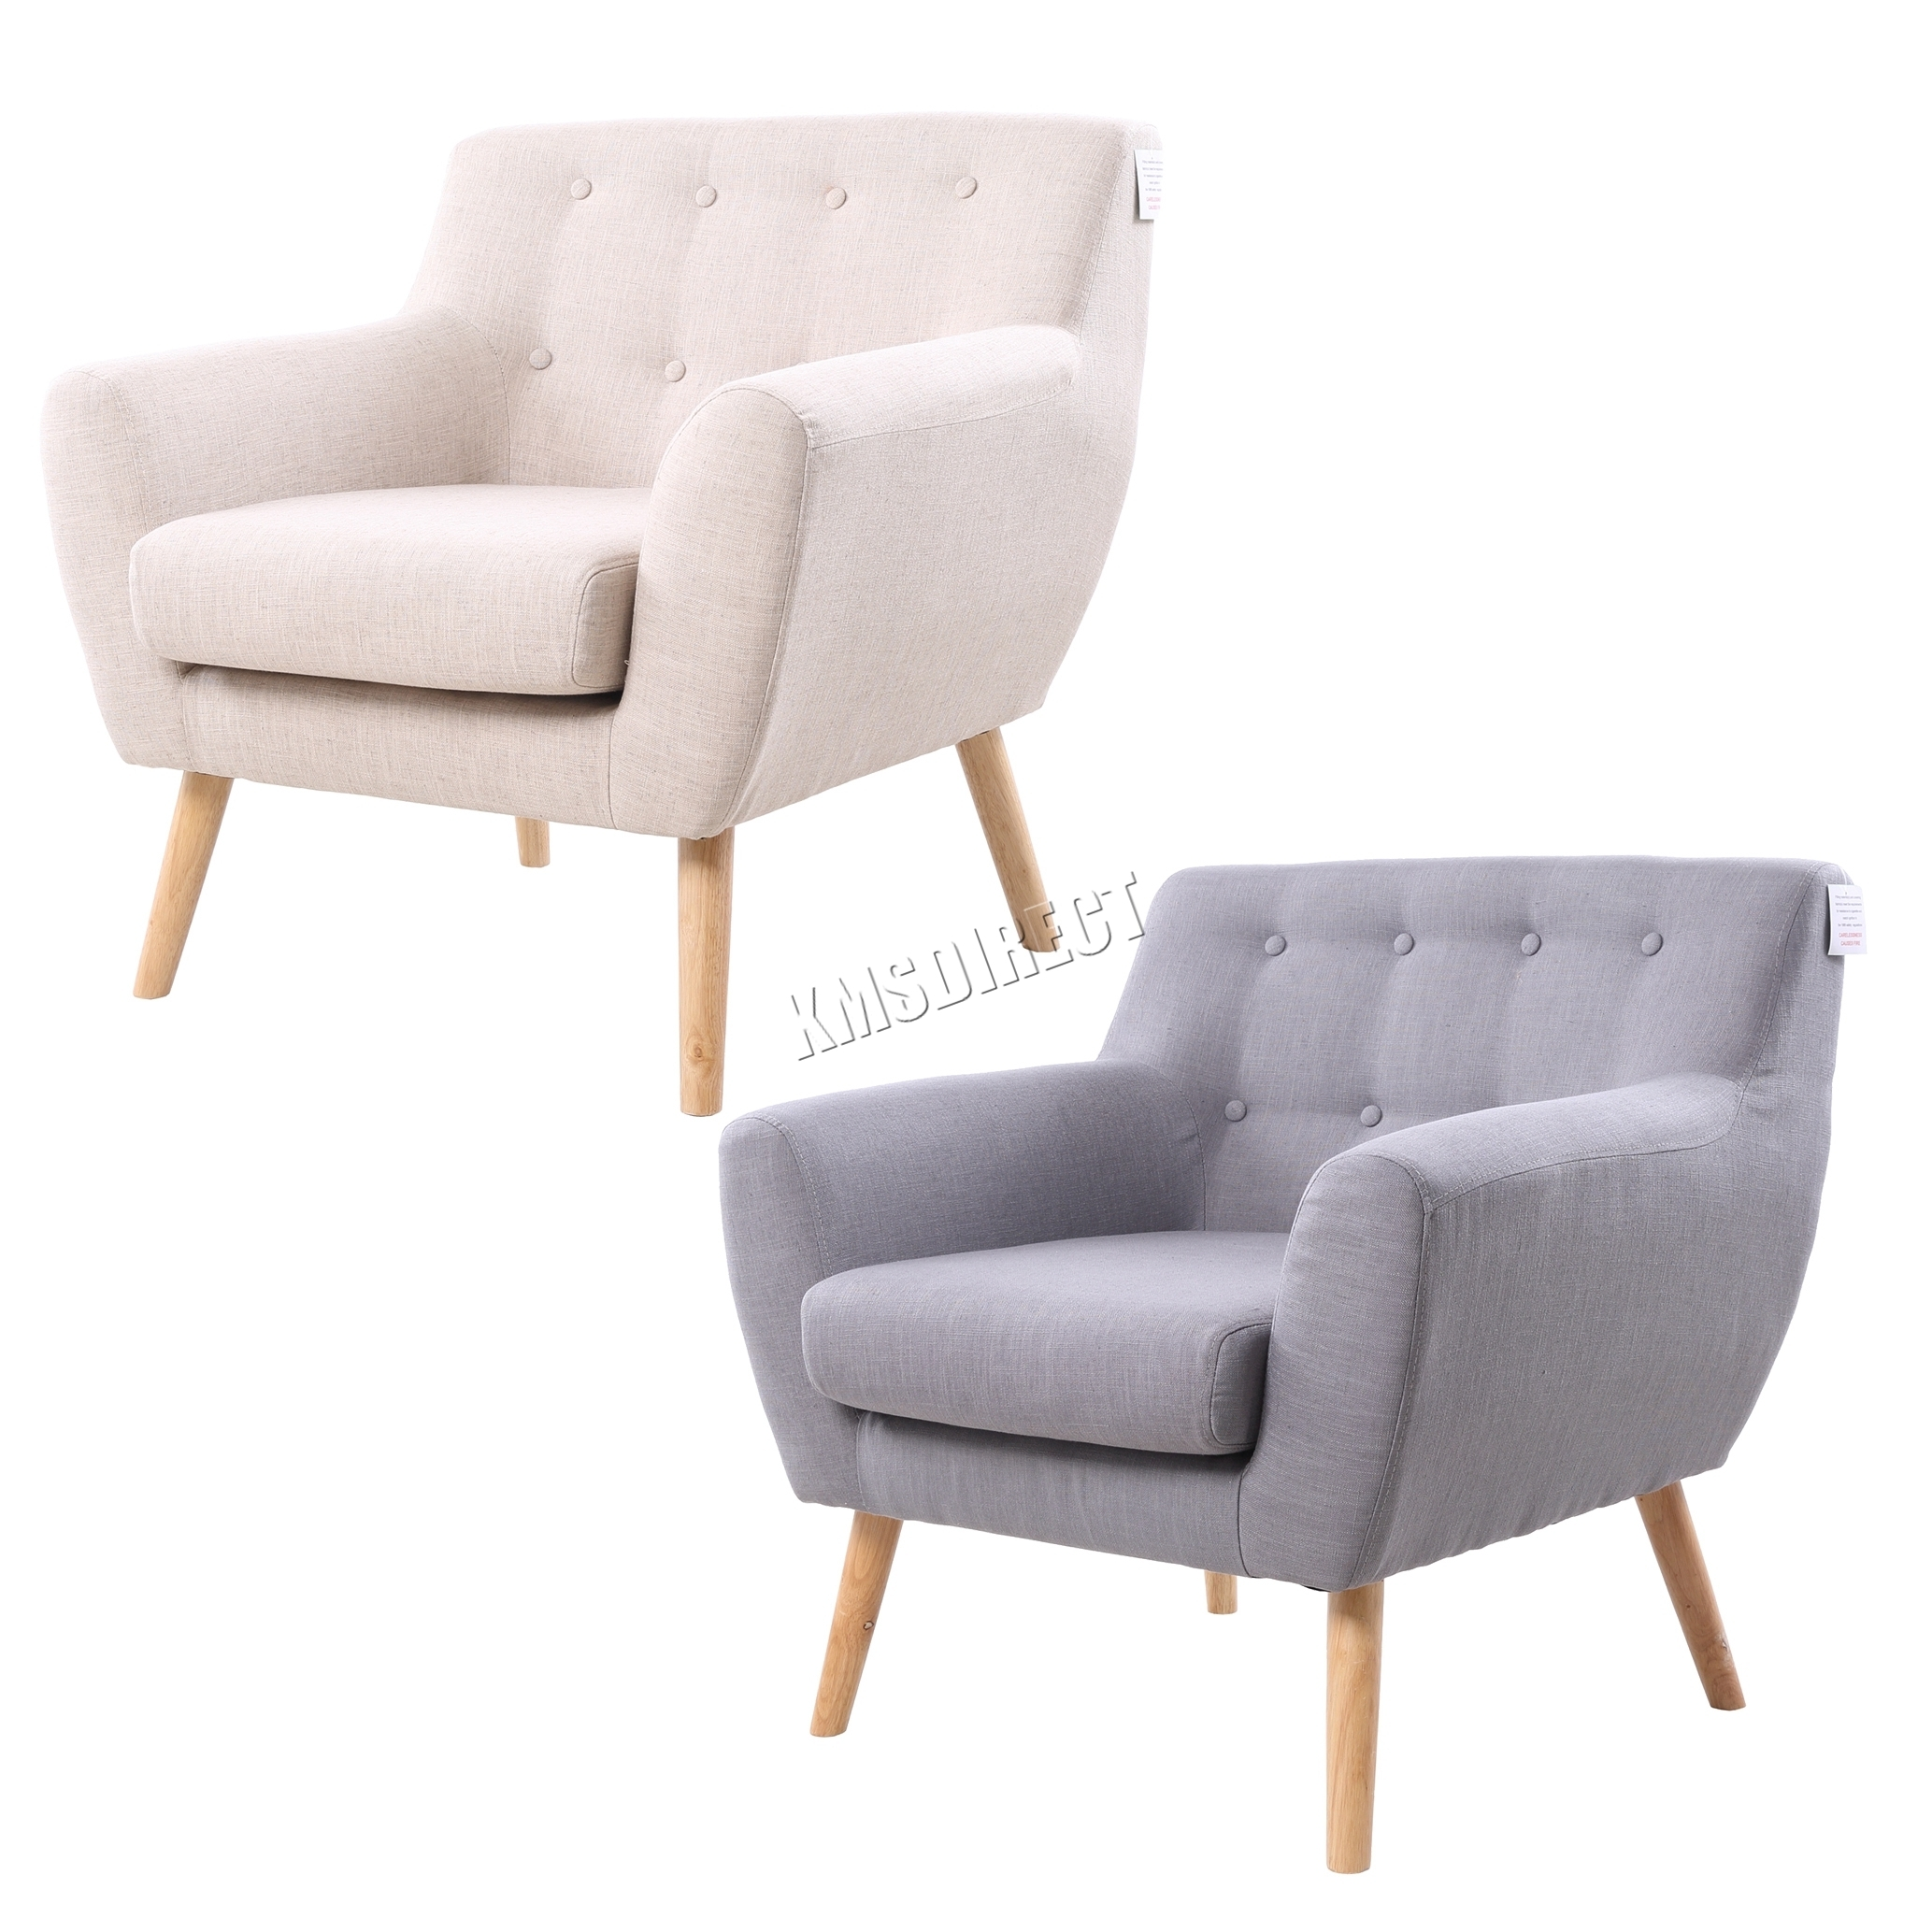 Wonderful Single Seater Sofa With Best Single Seat Sofa 11 About Pertaining To Single Sofas (Image 10 of 10)